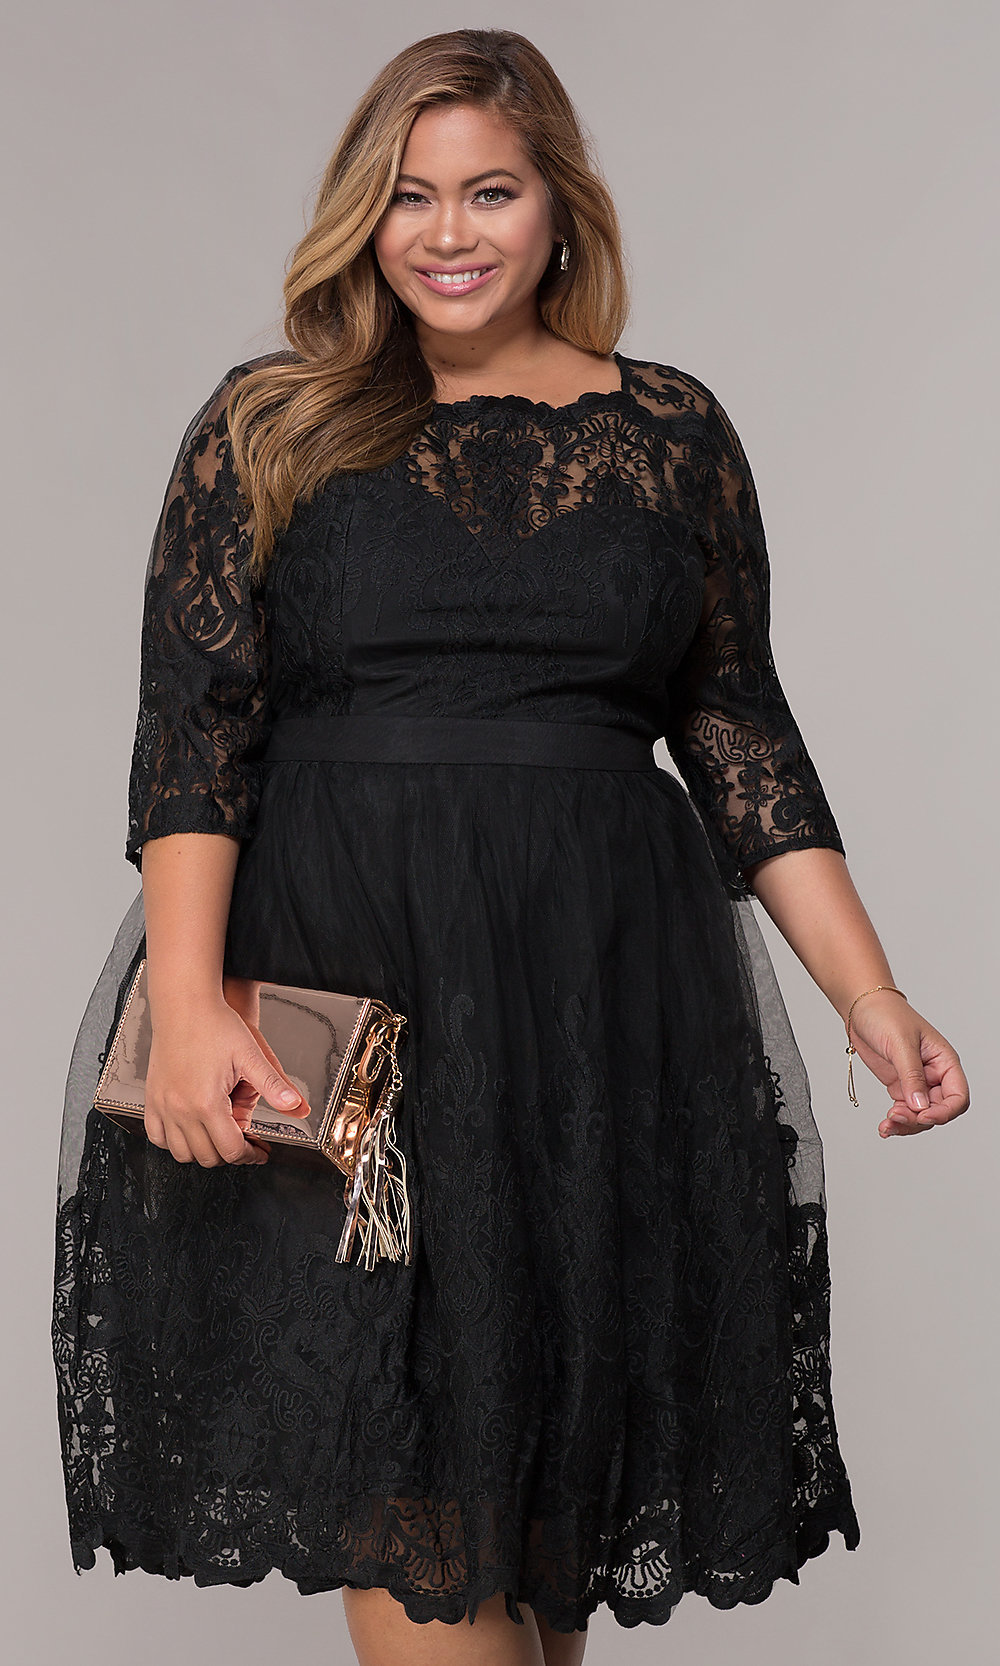 Wedding Guest Dresses With Sleeves.Short Lace Plus Size 3 4 Sleeve Wedding Guest Dress